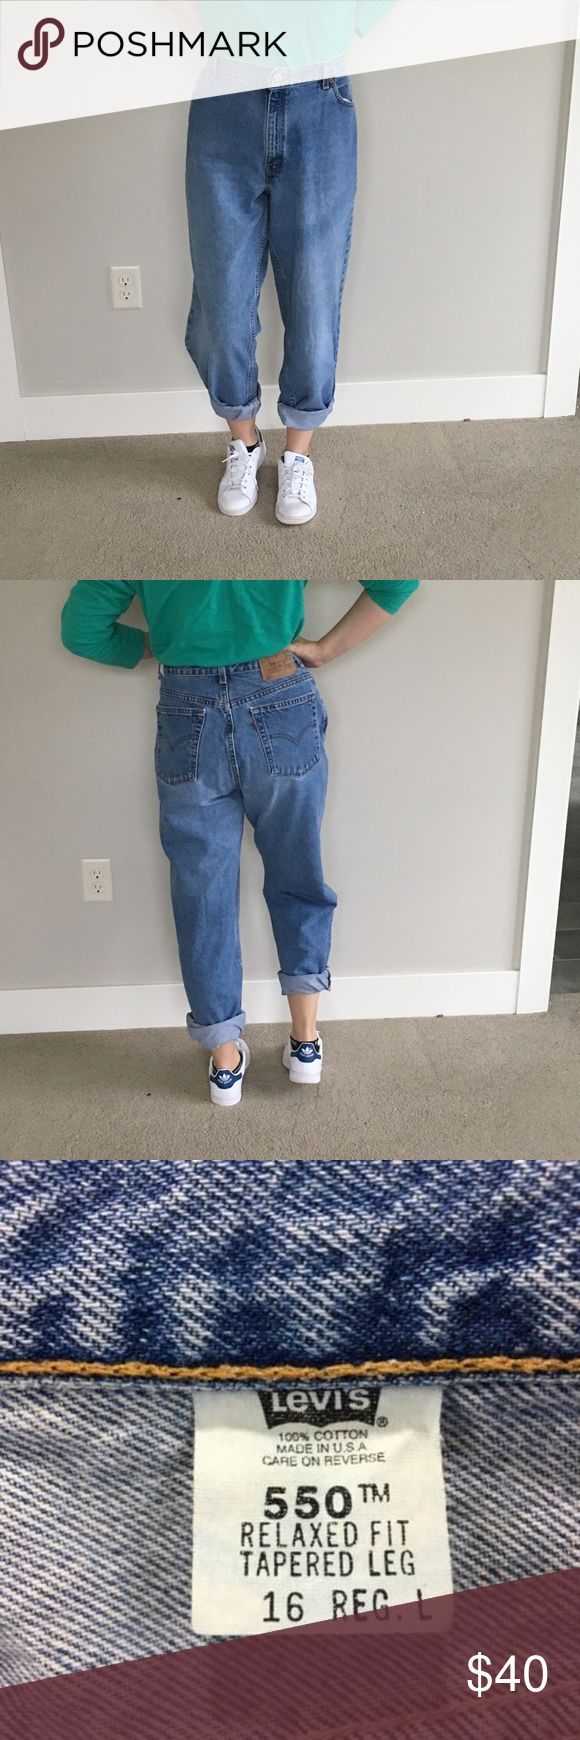 Vintage Levi's 550 High Waisted Mom Jeans Tapered In good condition for their age, but they do have some Wear to the bottom of the pant legs as well as a small hole near the belt loop on the back (view picture). Flat waist measurement was used to convert these to a modern size 32. **please note that the model is actually a size ~27 and gathered the jeans in the back to show what they would look like if they fit Levi's Jeans